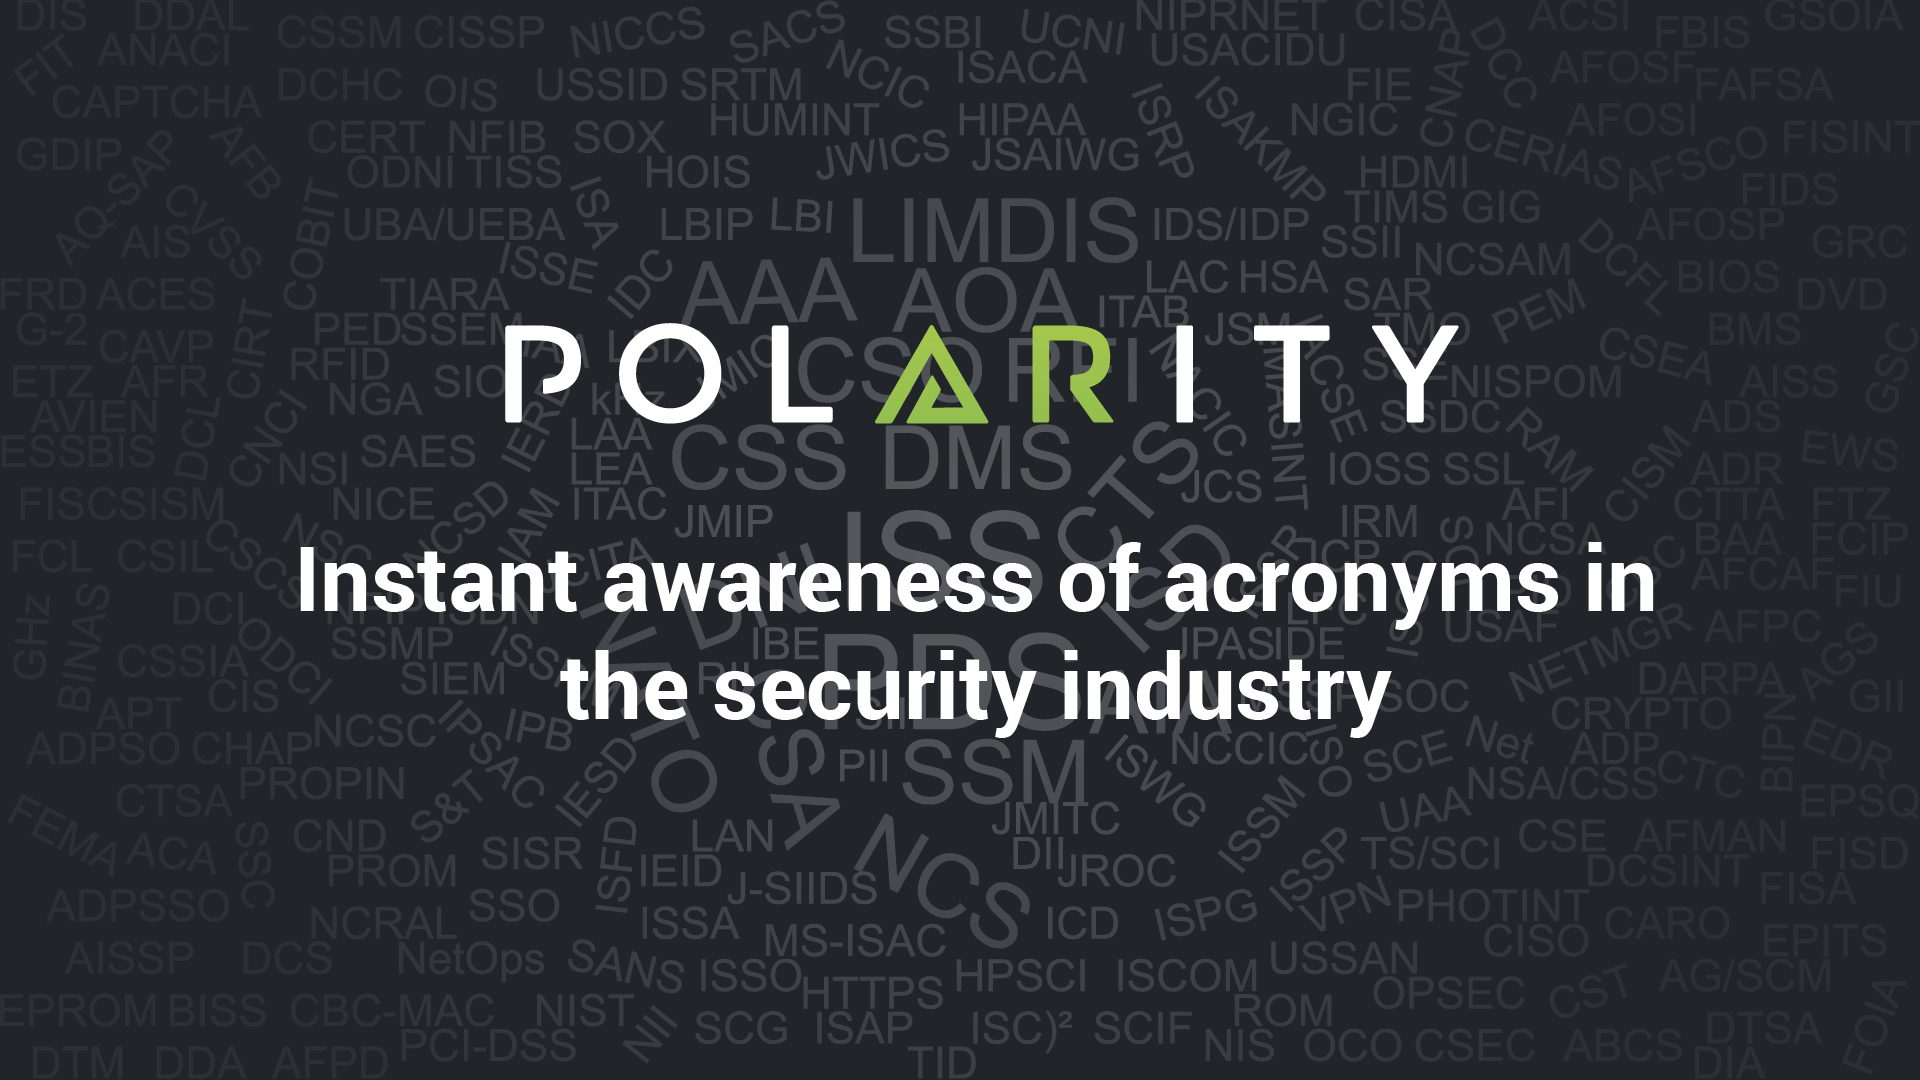 Security acronym guide Blog cover image